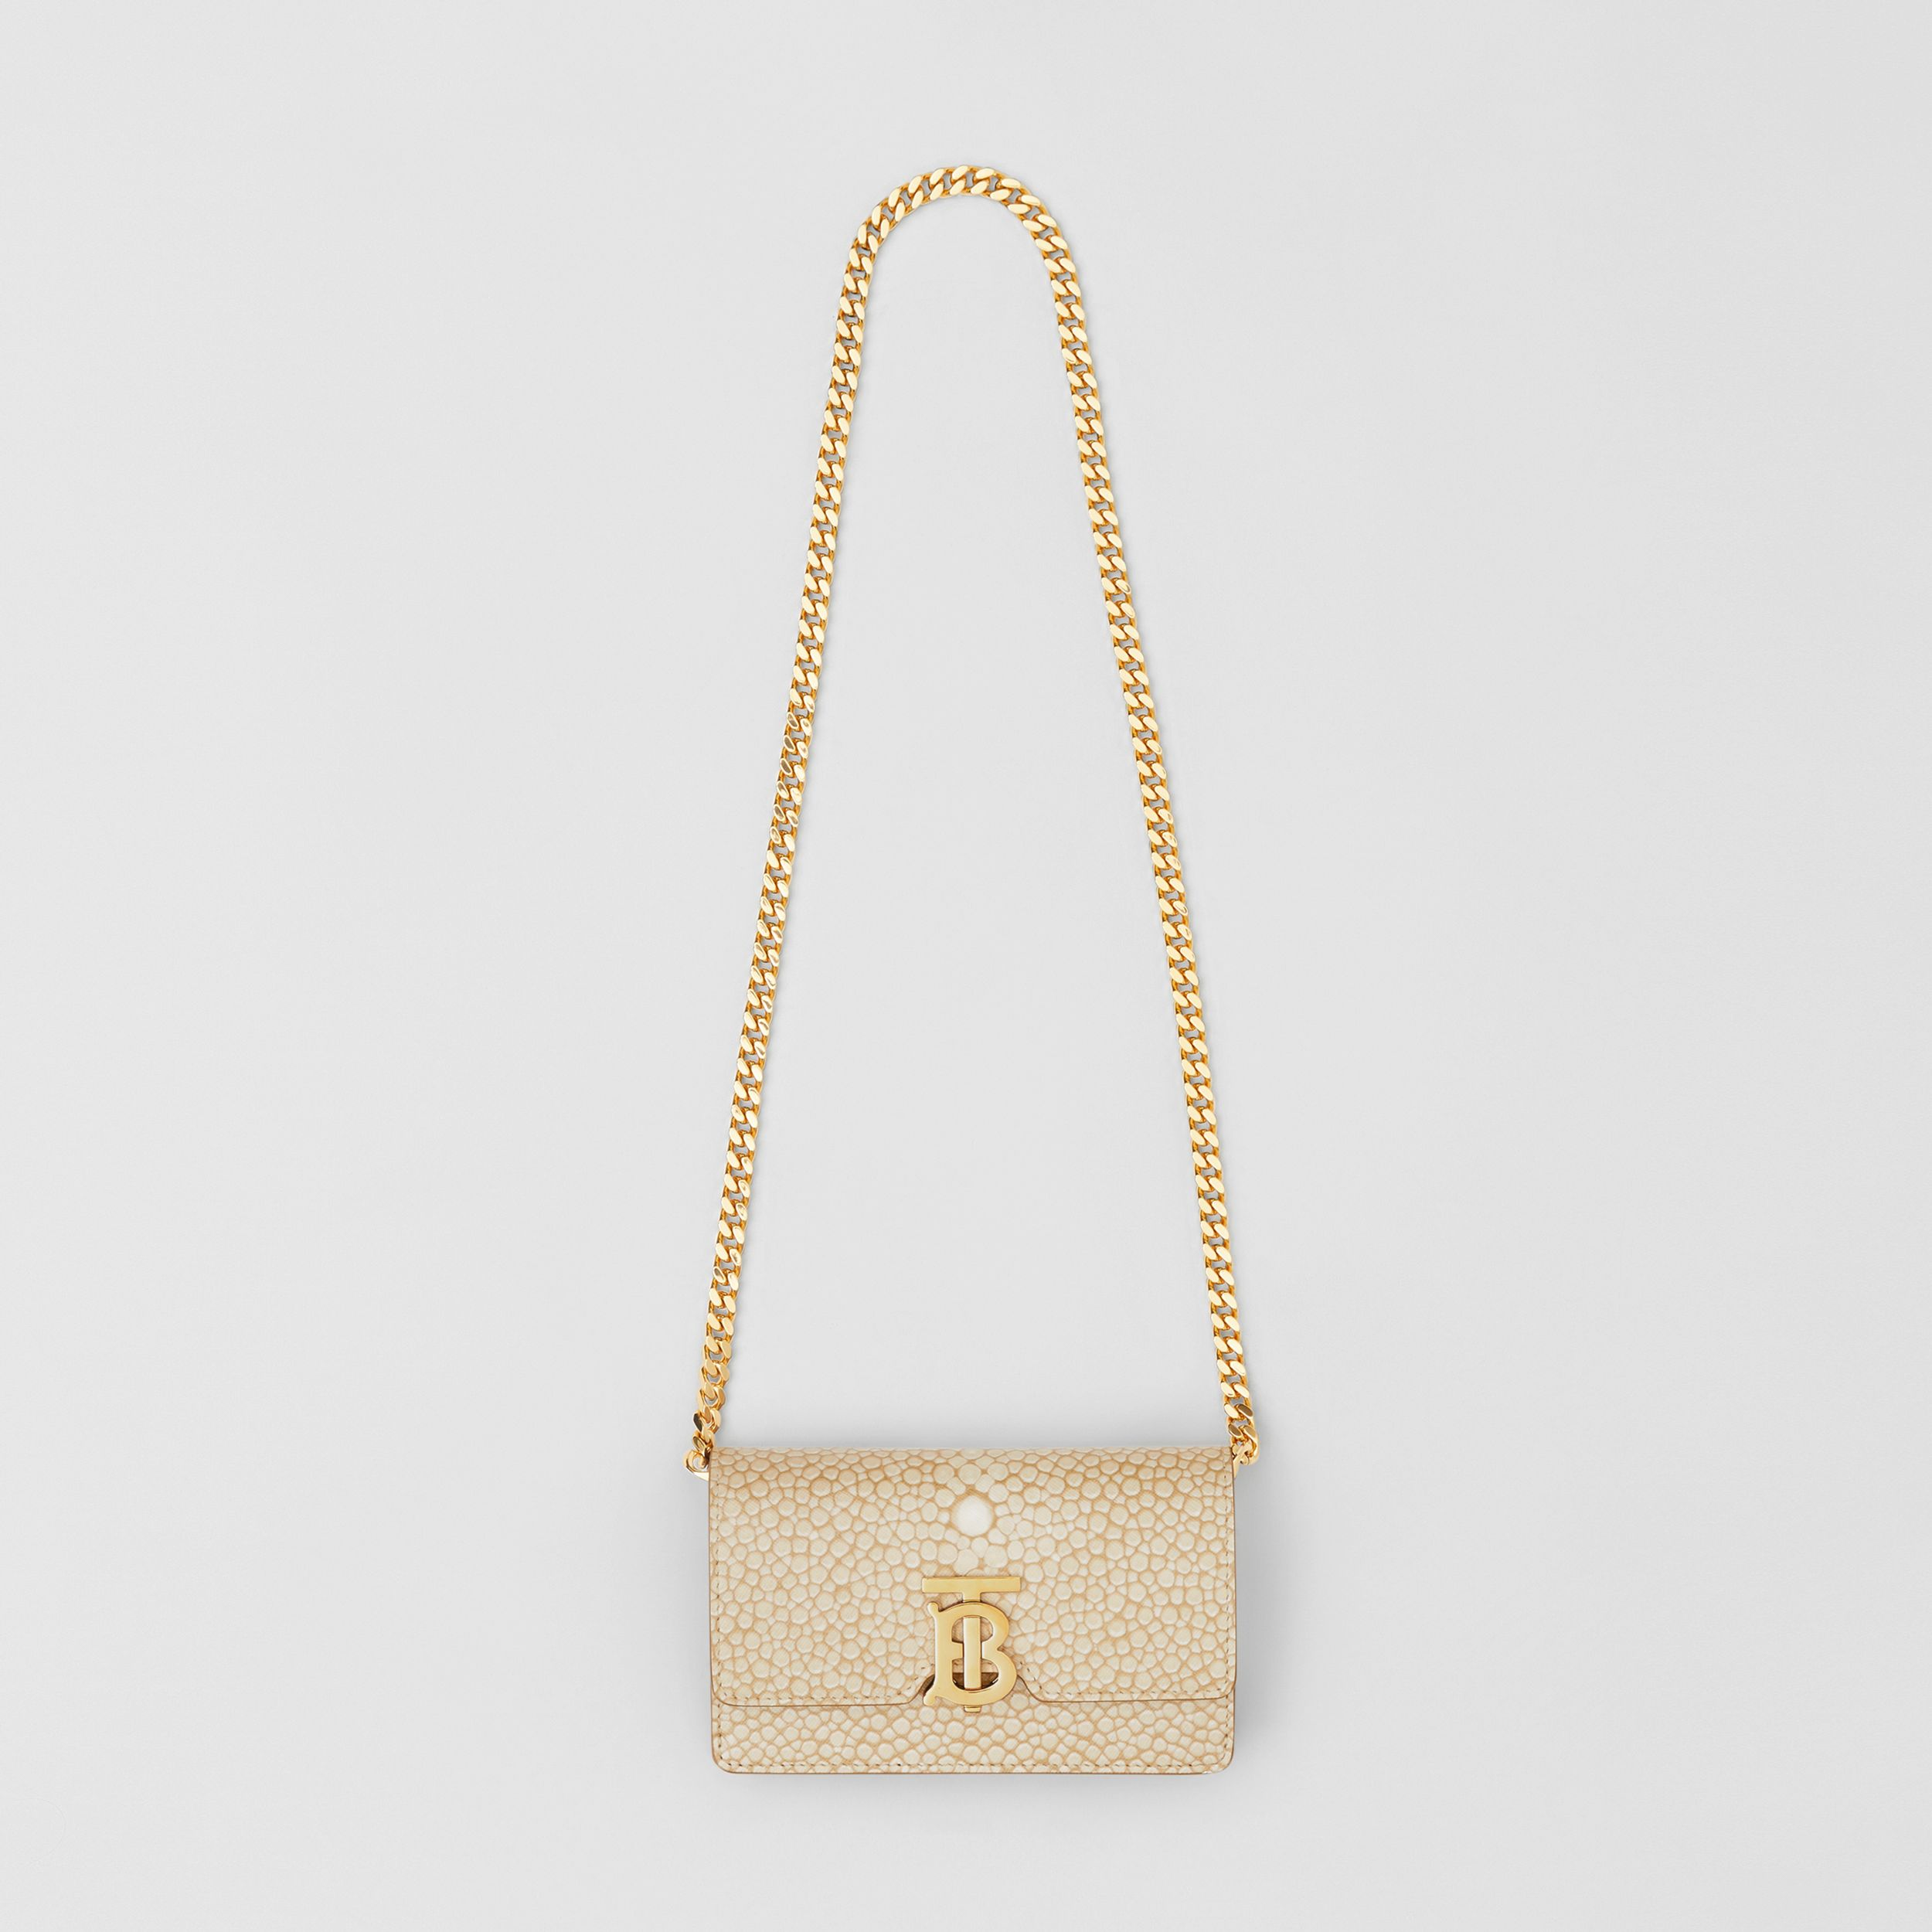 Mini Fish-scale Print Leather Shoulder Bag in Light Sand - Women | Burberry - 4